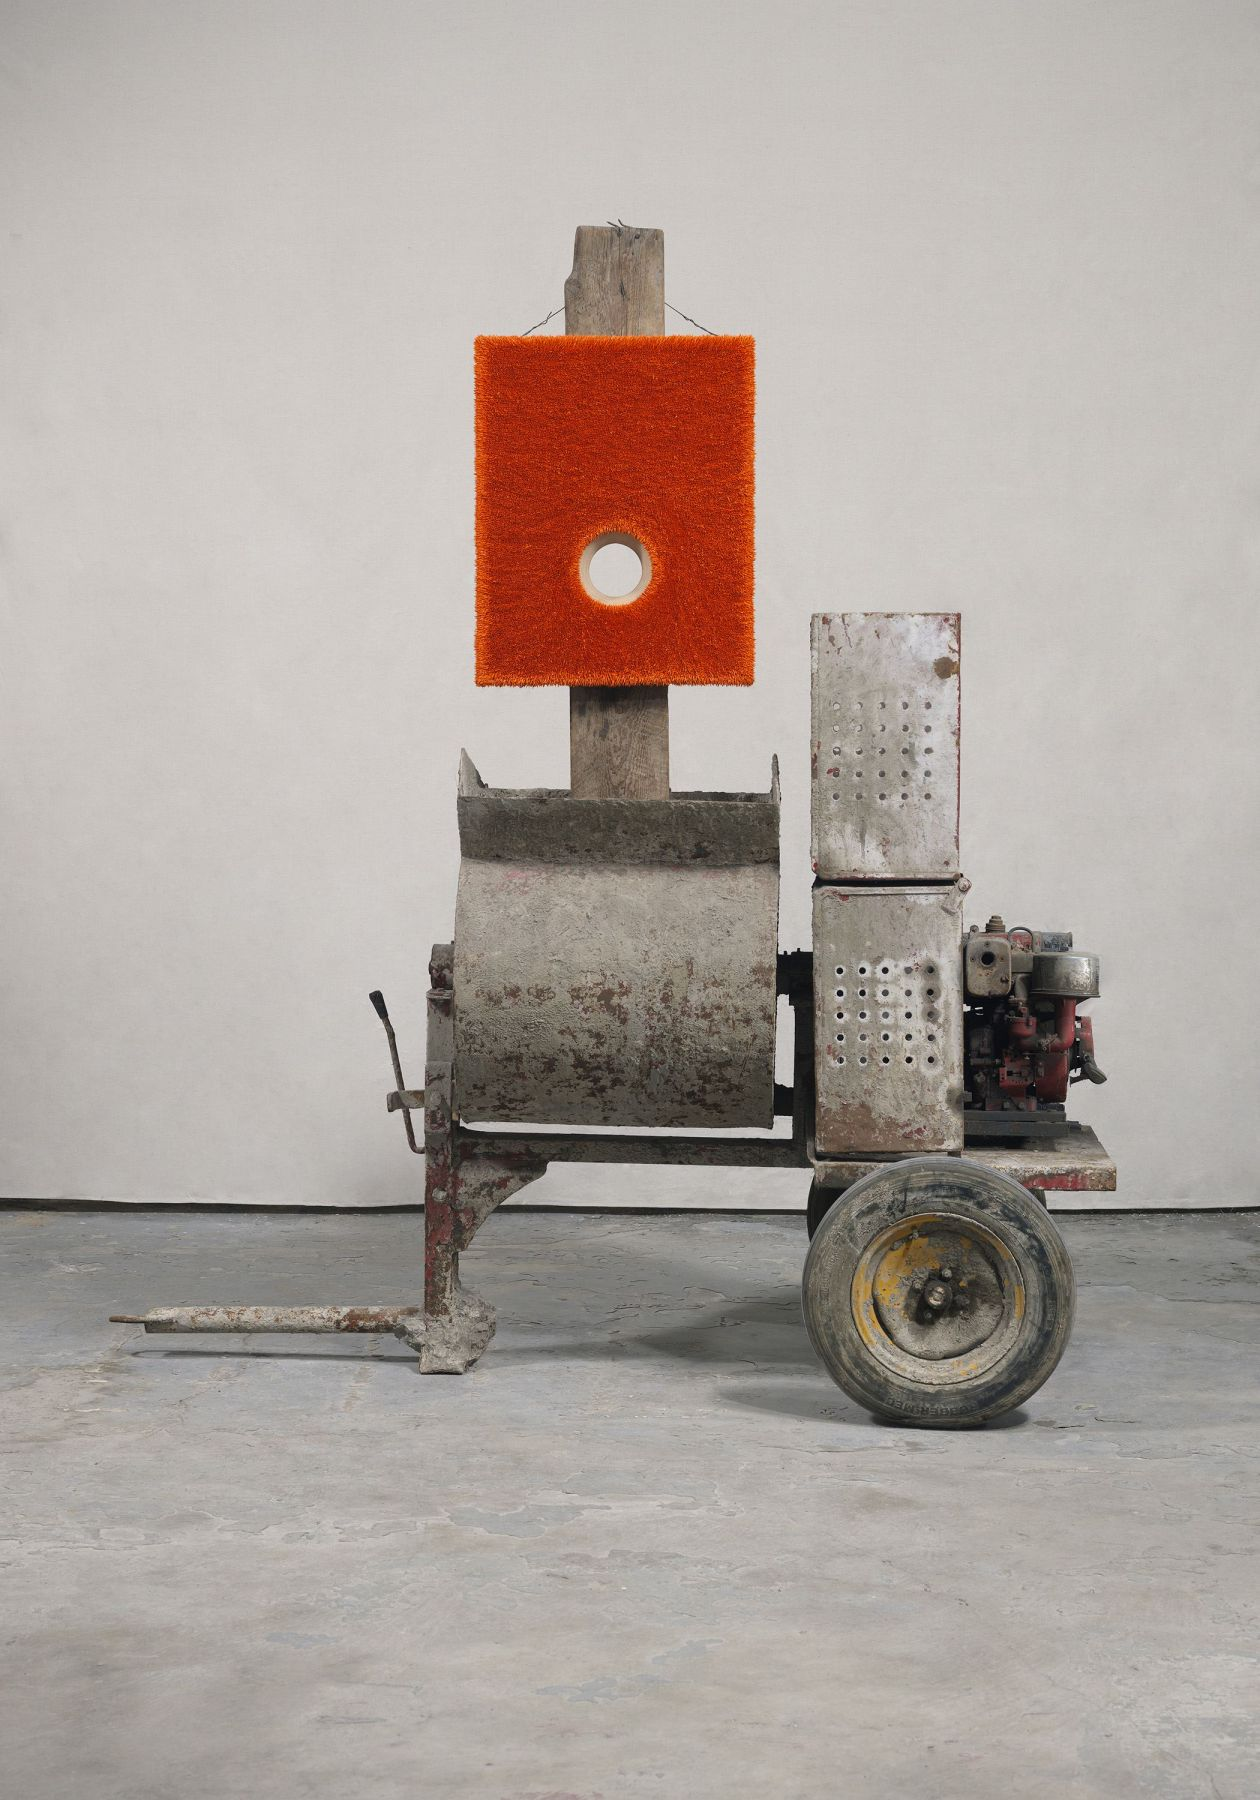 mixed media sculpture by donald moffett with red panel, tire, and concrete